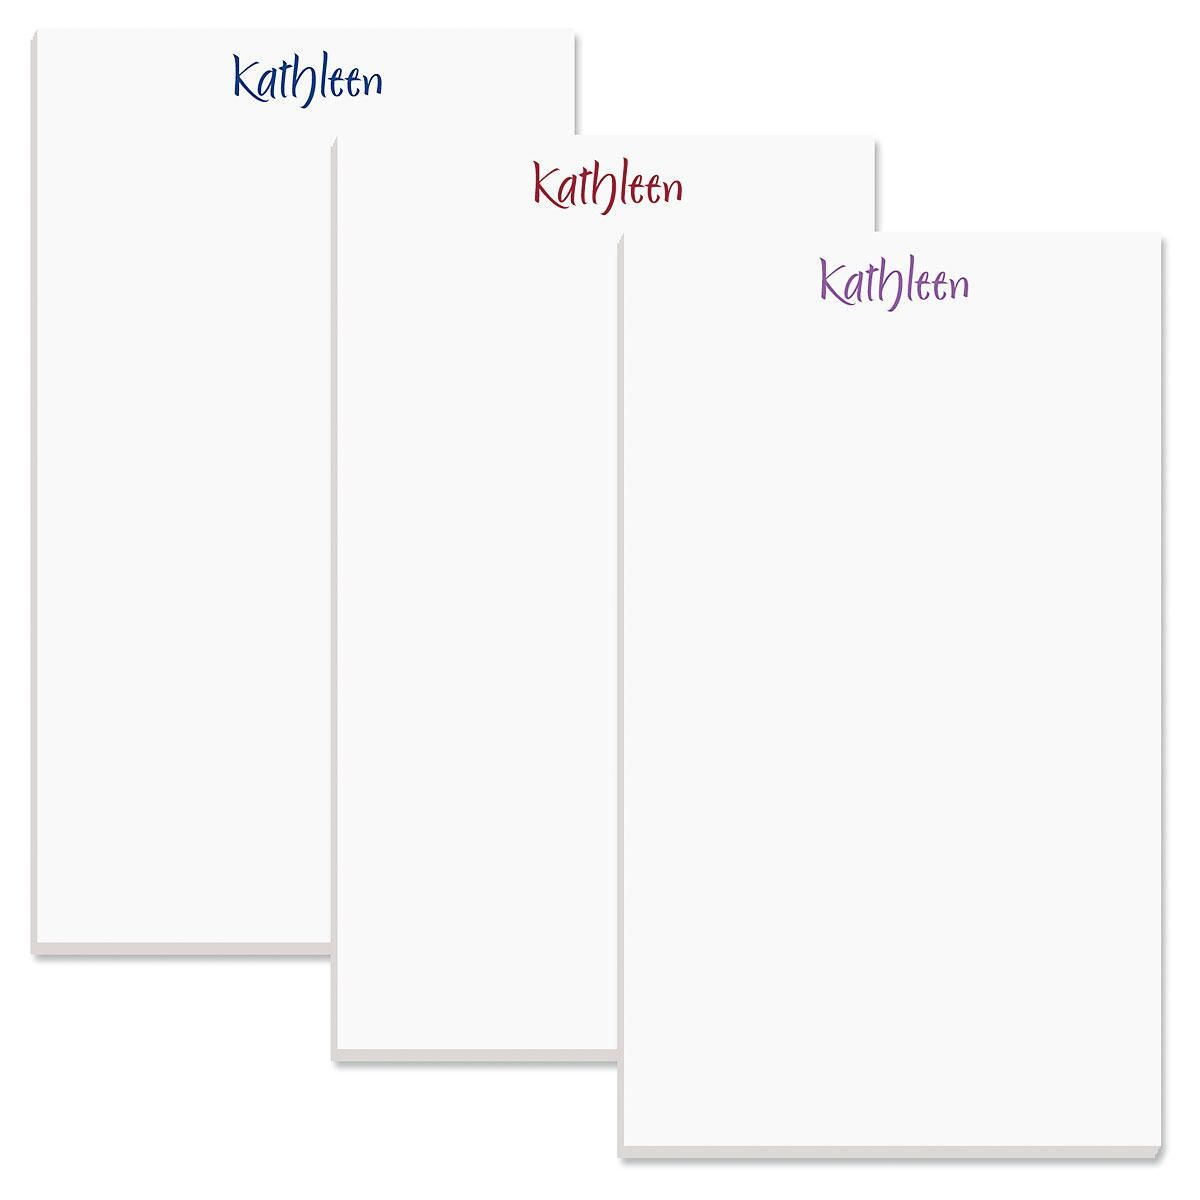 Elegant Personalized Notepads